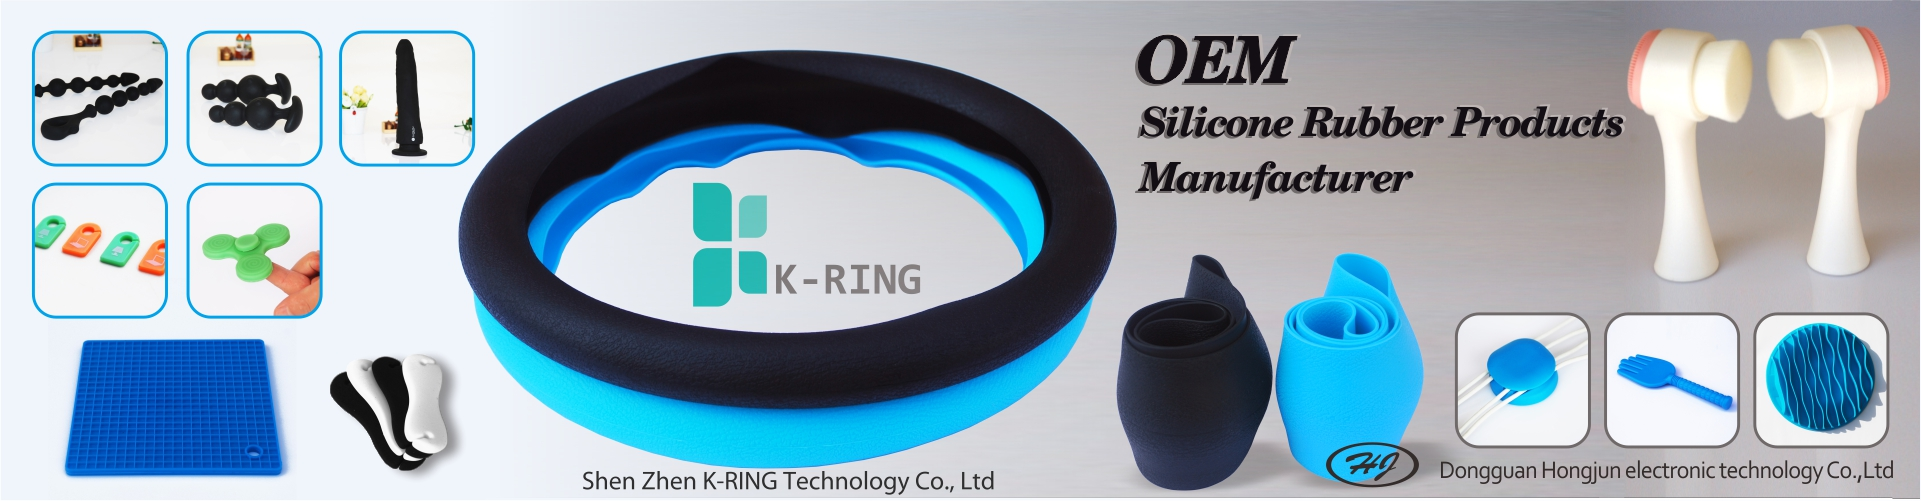 silicone rubber products